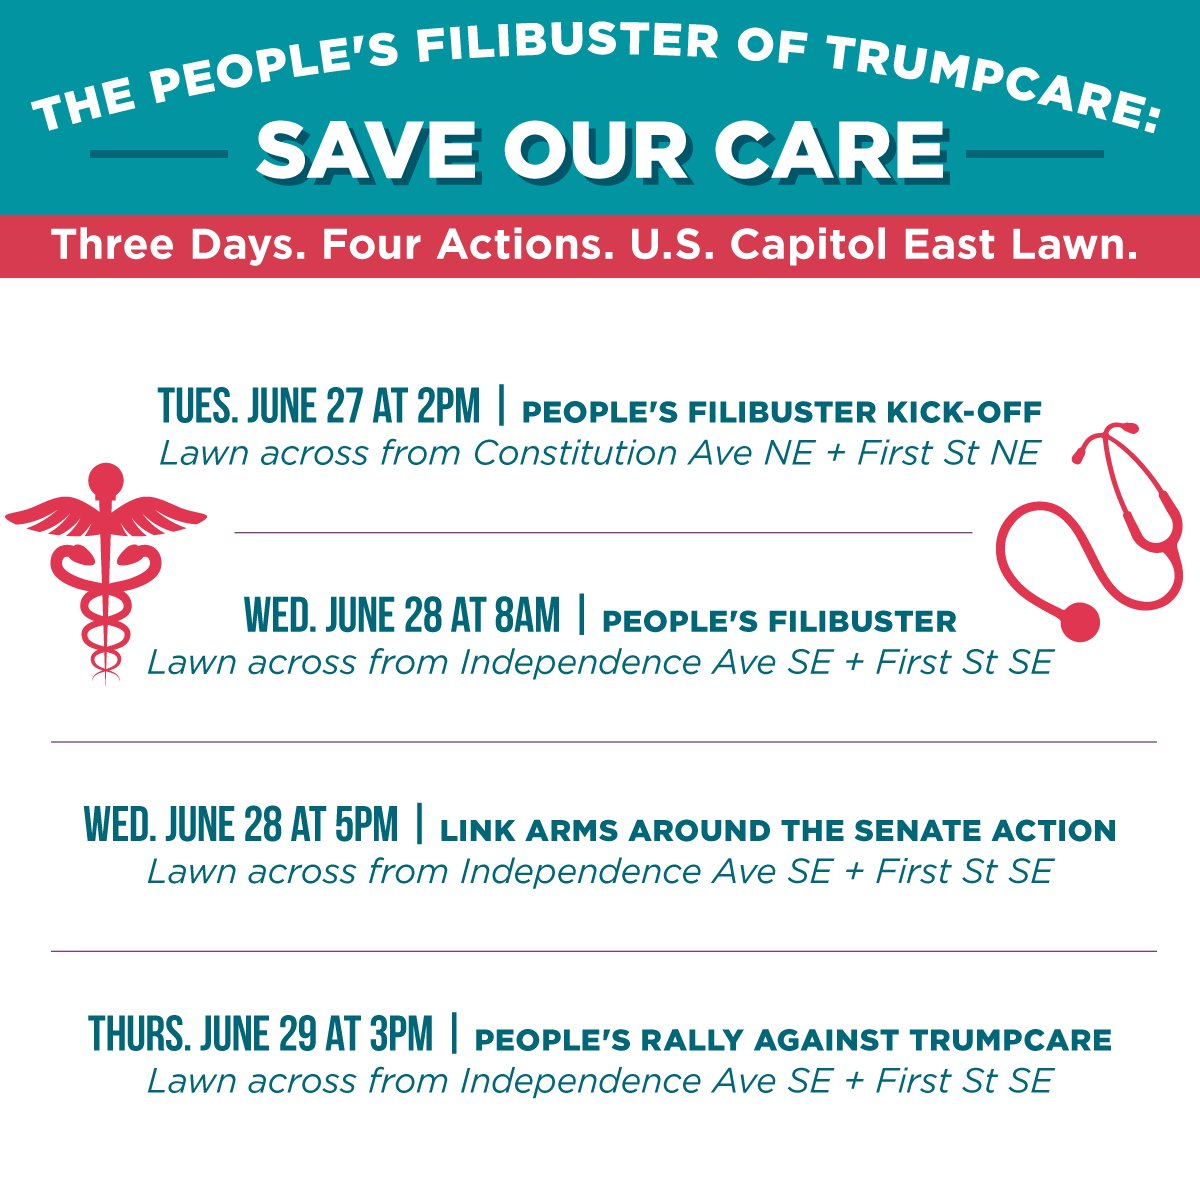 The ACA could be repealed this week! Join the #PeoplesFilibuster from 8-2 to #ProtectOurCare from Trumpcare: https://t.co/uys3HMy6q0